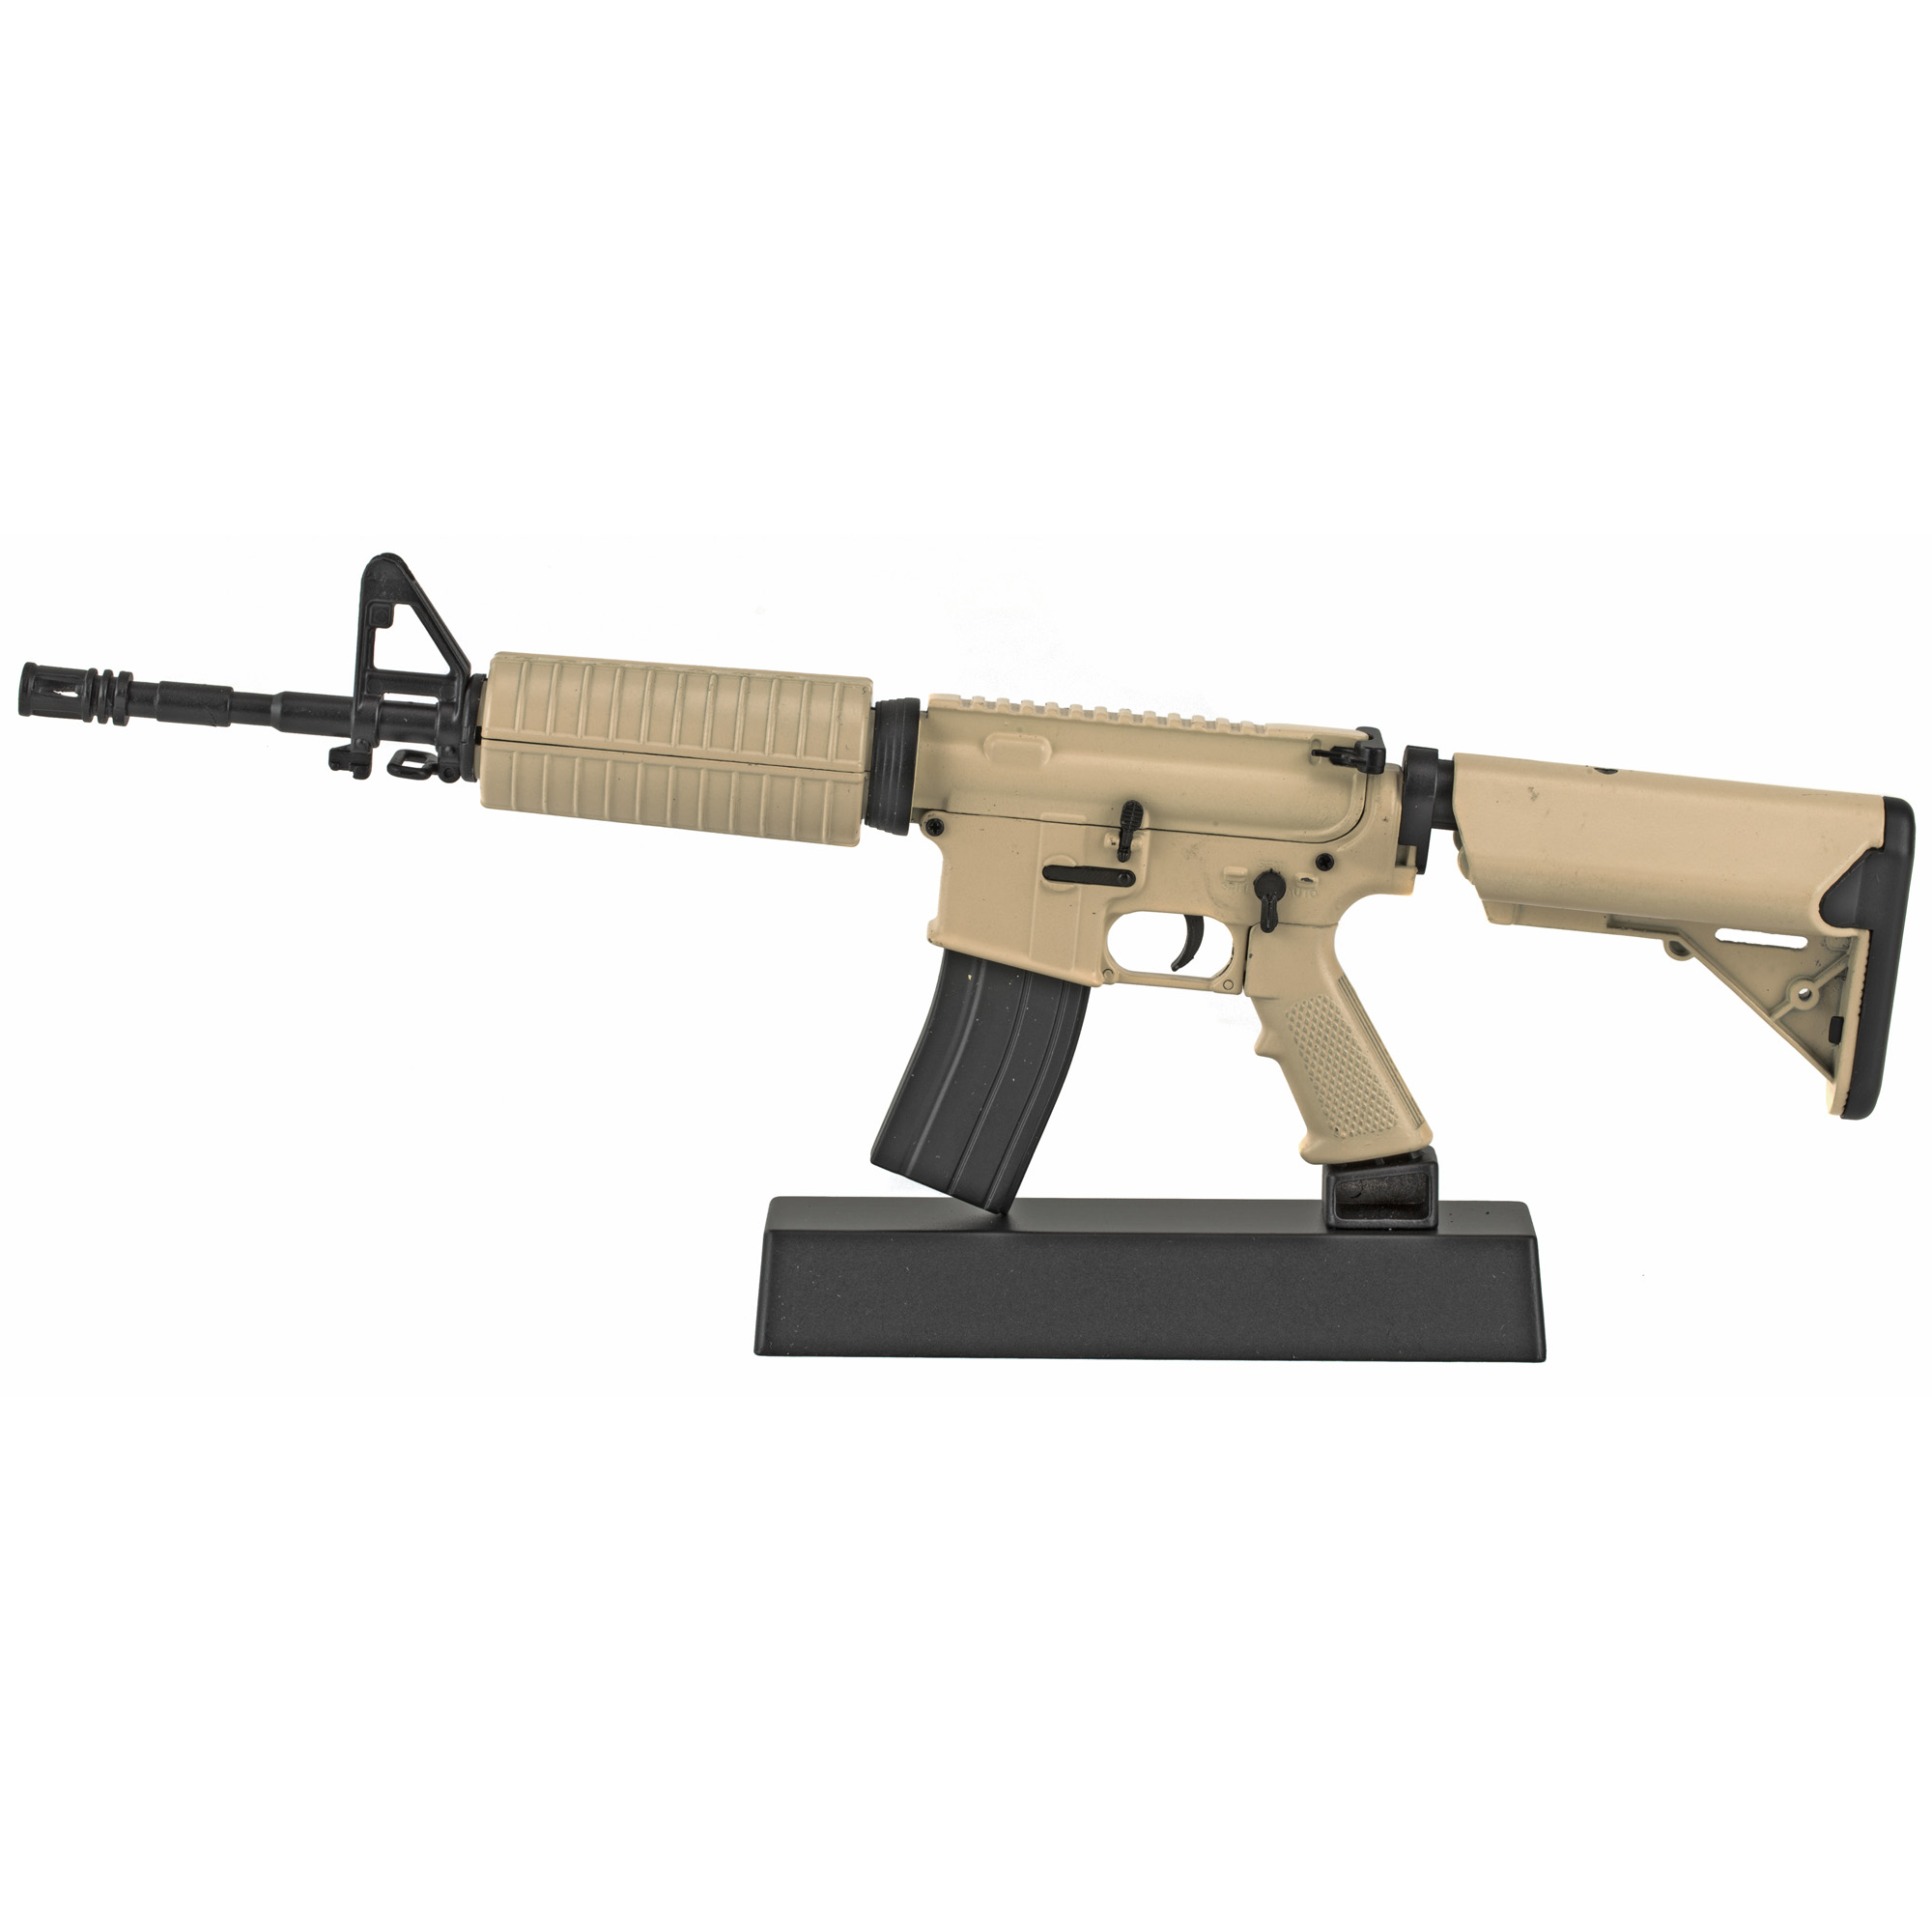 """Advanced Technology"""" AR-15 Non-Firing Mini Replica"""" 1/3 Scale"""" Includes: Charging Handle"""" Dust Cover"""" Trigger"""" Firing Modes"""" Adjustable Stock"""" Carry Handle"""" Removable Magazine with Three Brass Rounds and Magazine Release Button."""